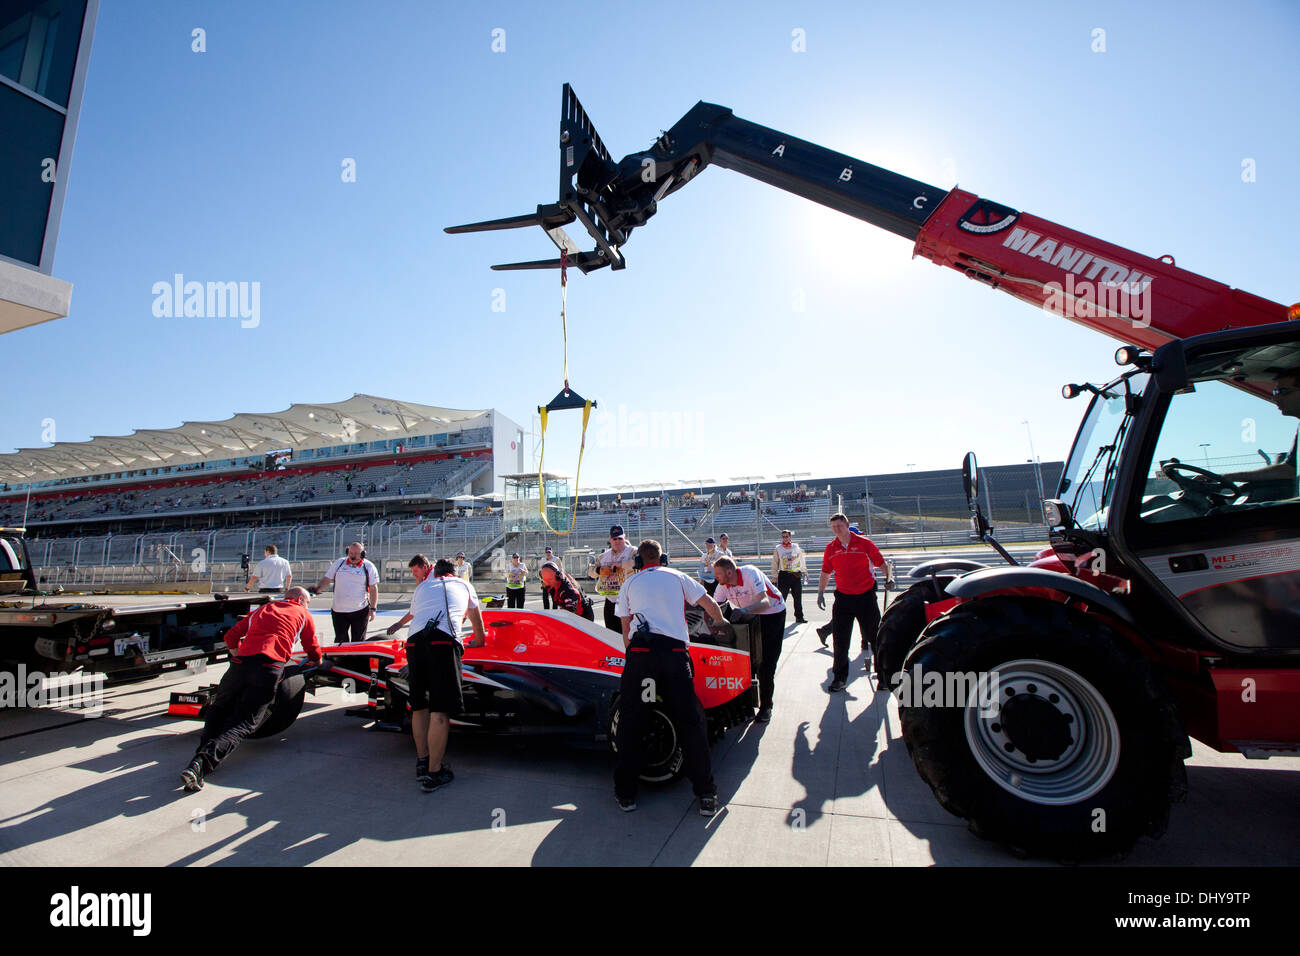 Disabled Formula 1 car is lifted from the pit area during a practice session for the United States Grand Prix near Austin Texas - Stock Image